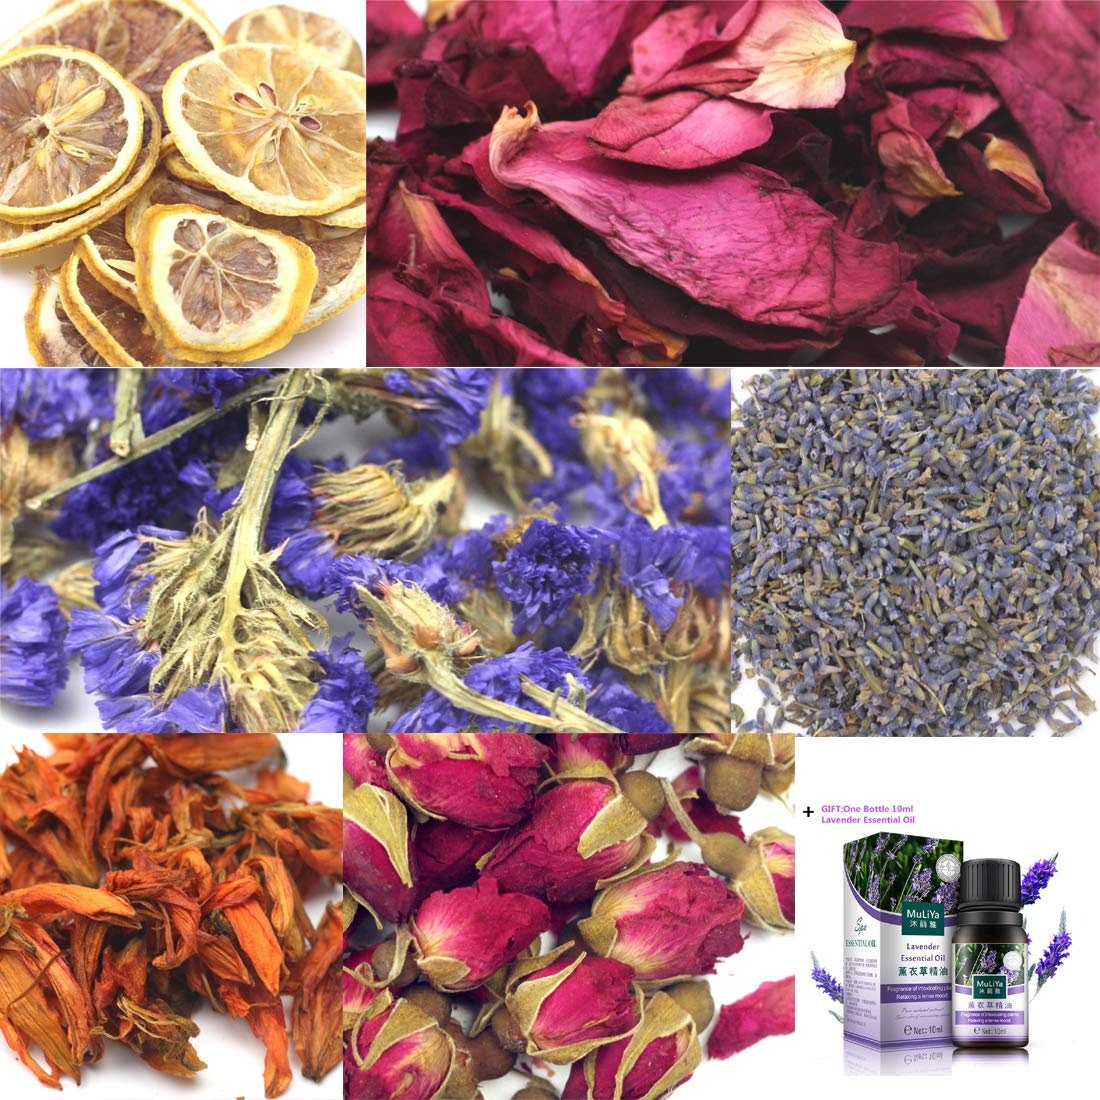 Oameusa Dried Flowers,Artisan Dried Flower Kit - Candle Making, Soap Making,DIY Soap, 100% Pure Nature Flowers, AAA Food Grade- Rose Flower, Lemon,Lavender + Lavender Essential Oil WA0040VV WA0066